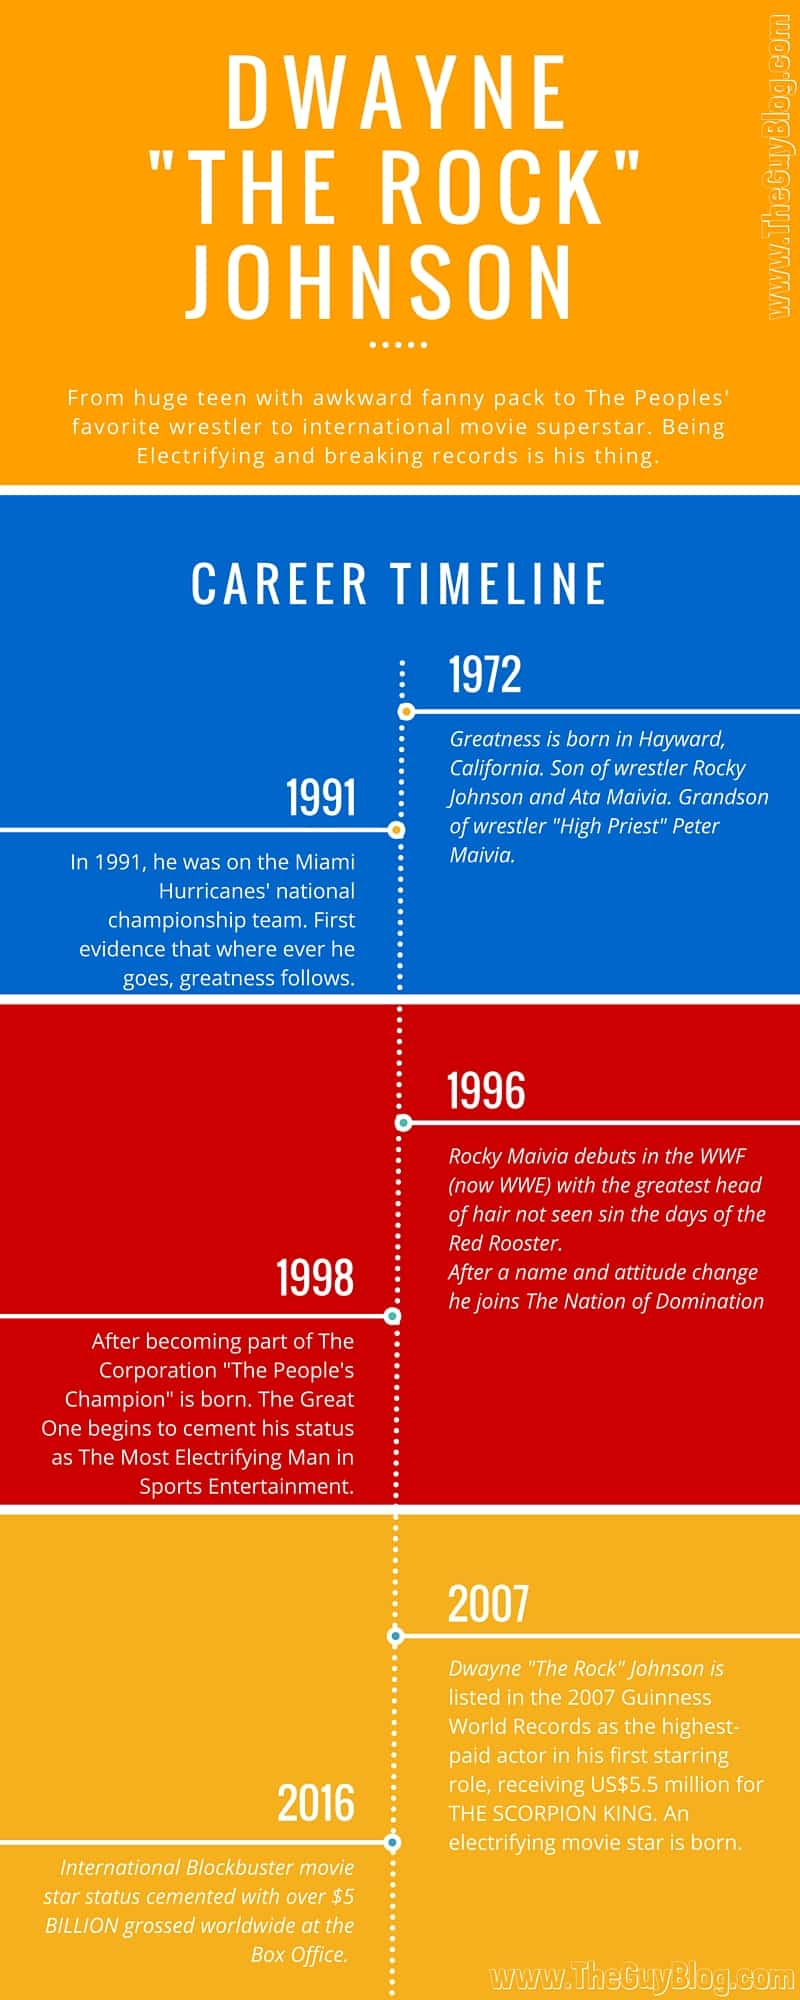 The Rock Career Timeline Infographic | The Guy Blog